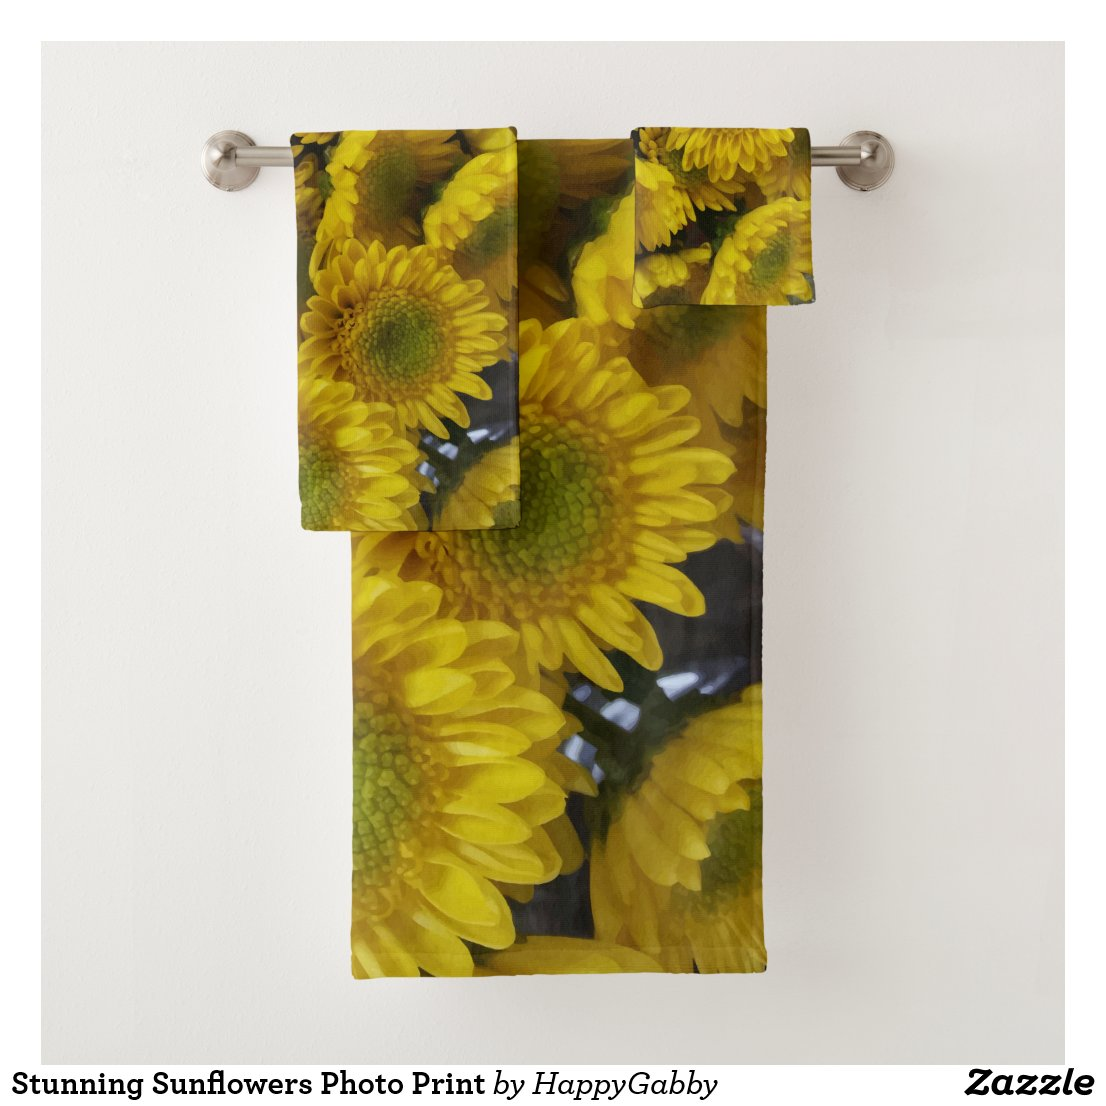 Sunflowers Photo Print towels for bathroom